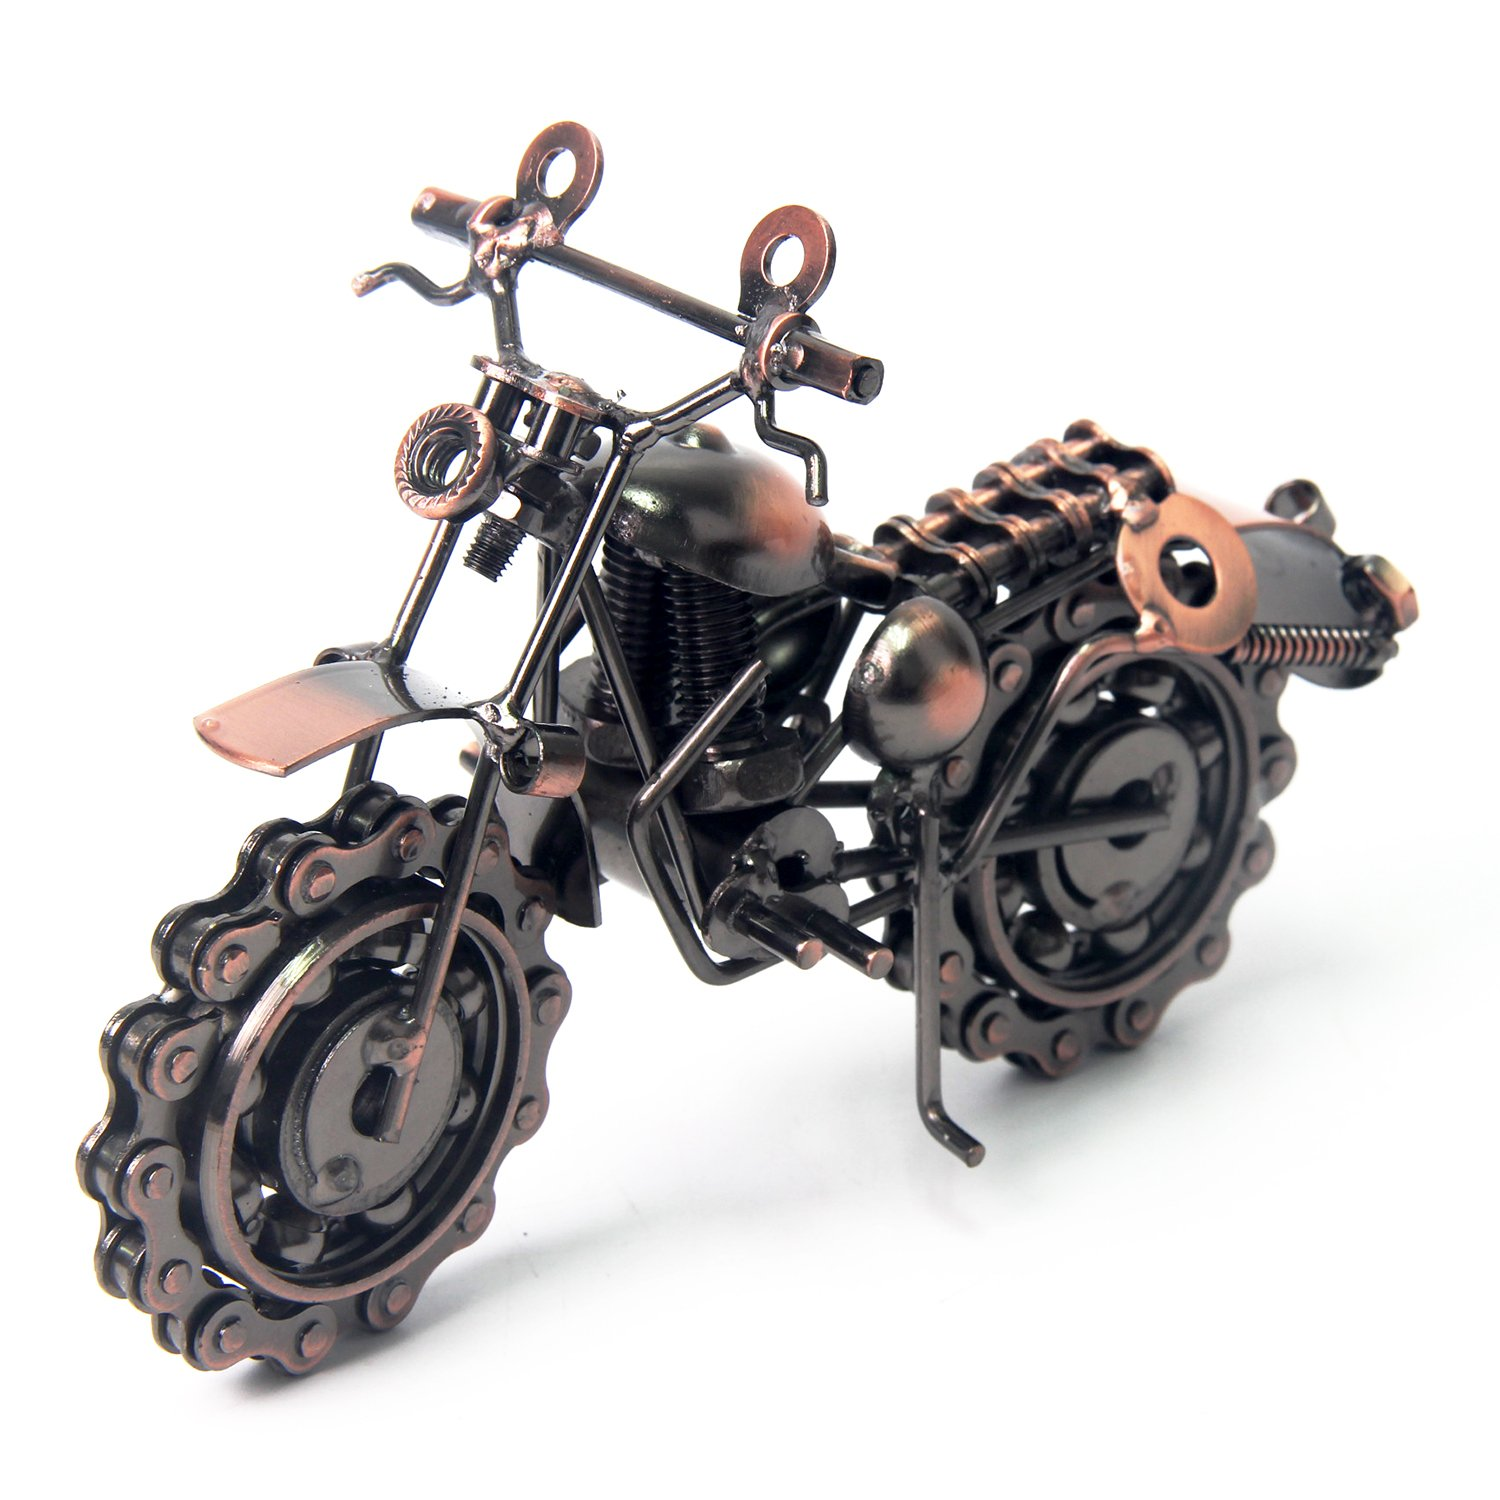 Vintage Handcrafted Iron Motorbike Model With Chainwheel